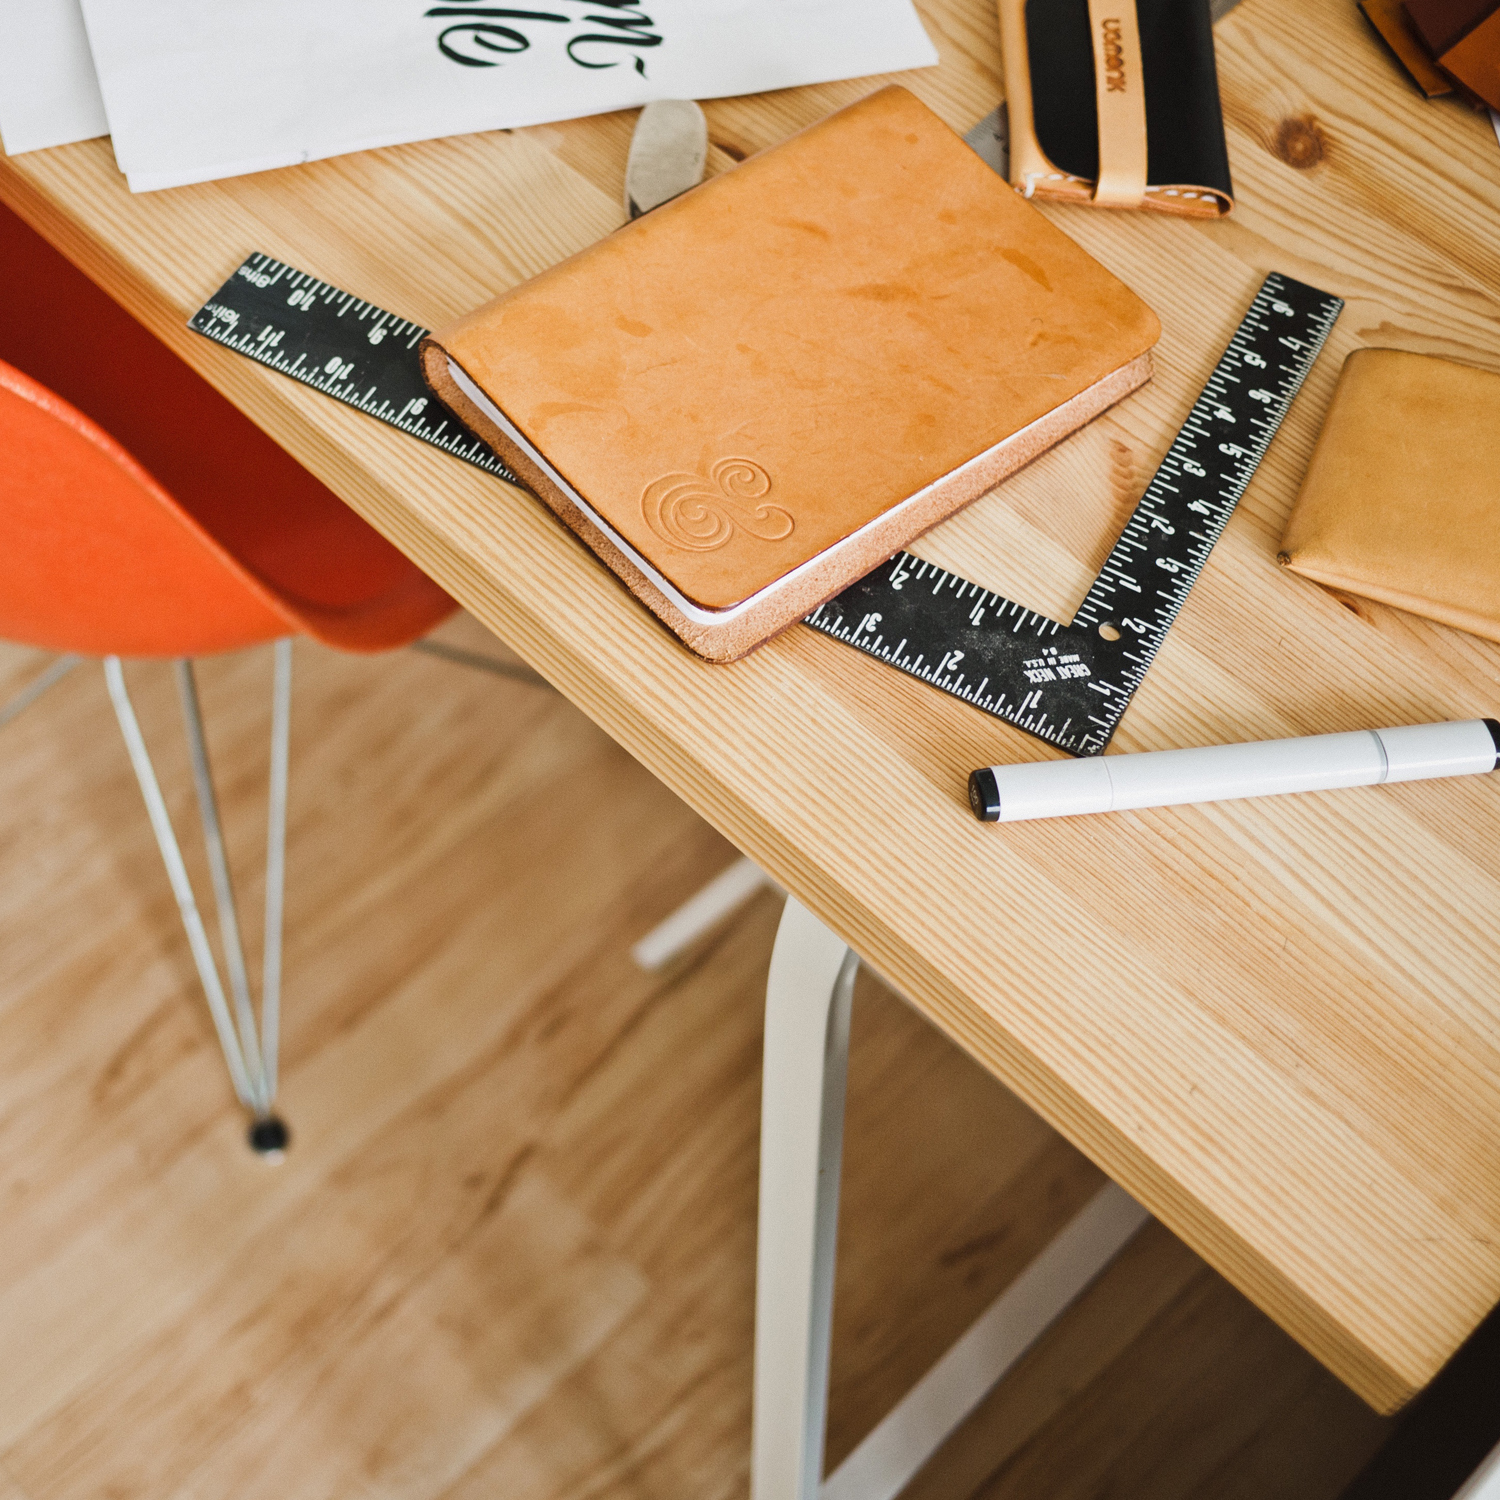 Remove clutter from your desk to boost your creativity and productivity.